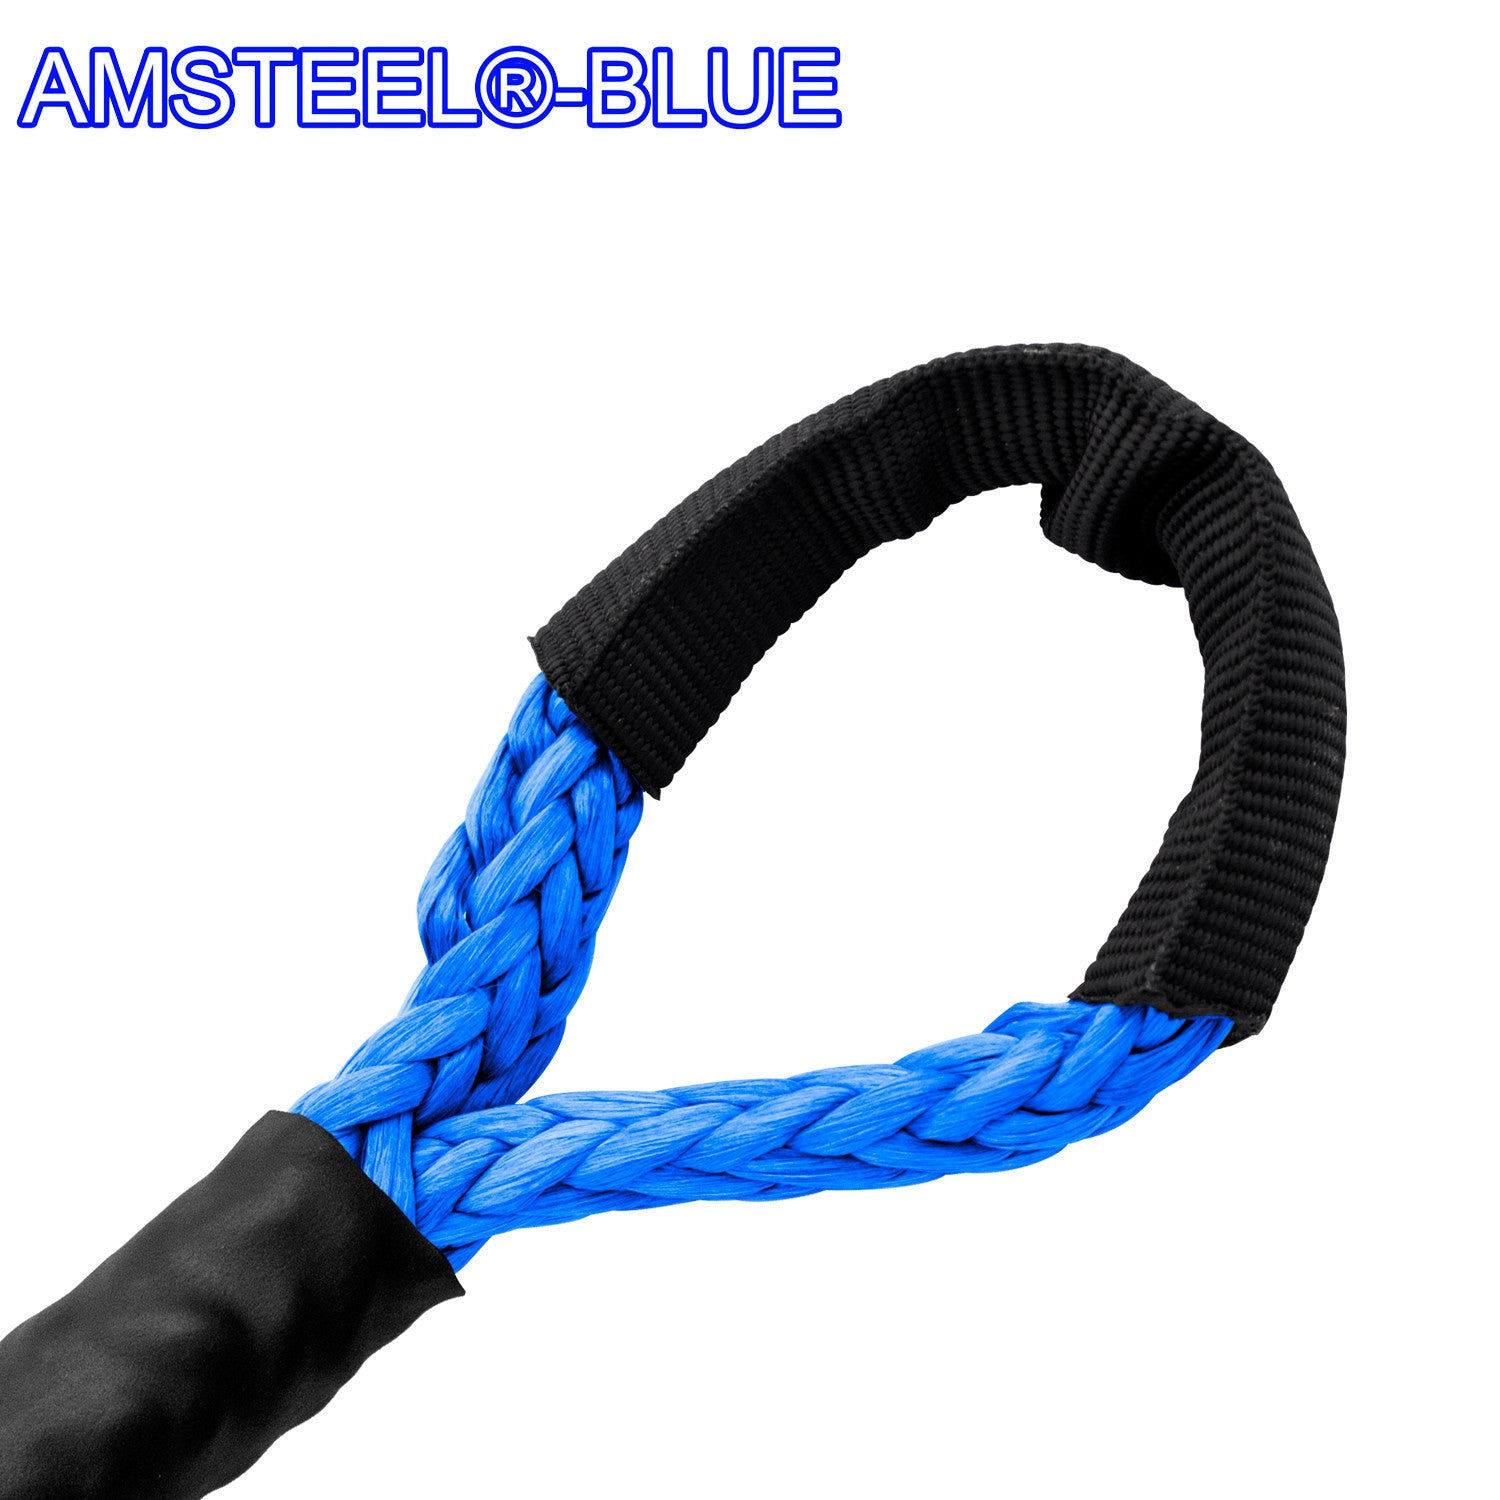 5/16 Main Line Winch Rope - AmSteel®Blue